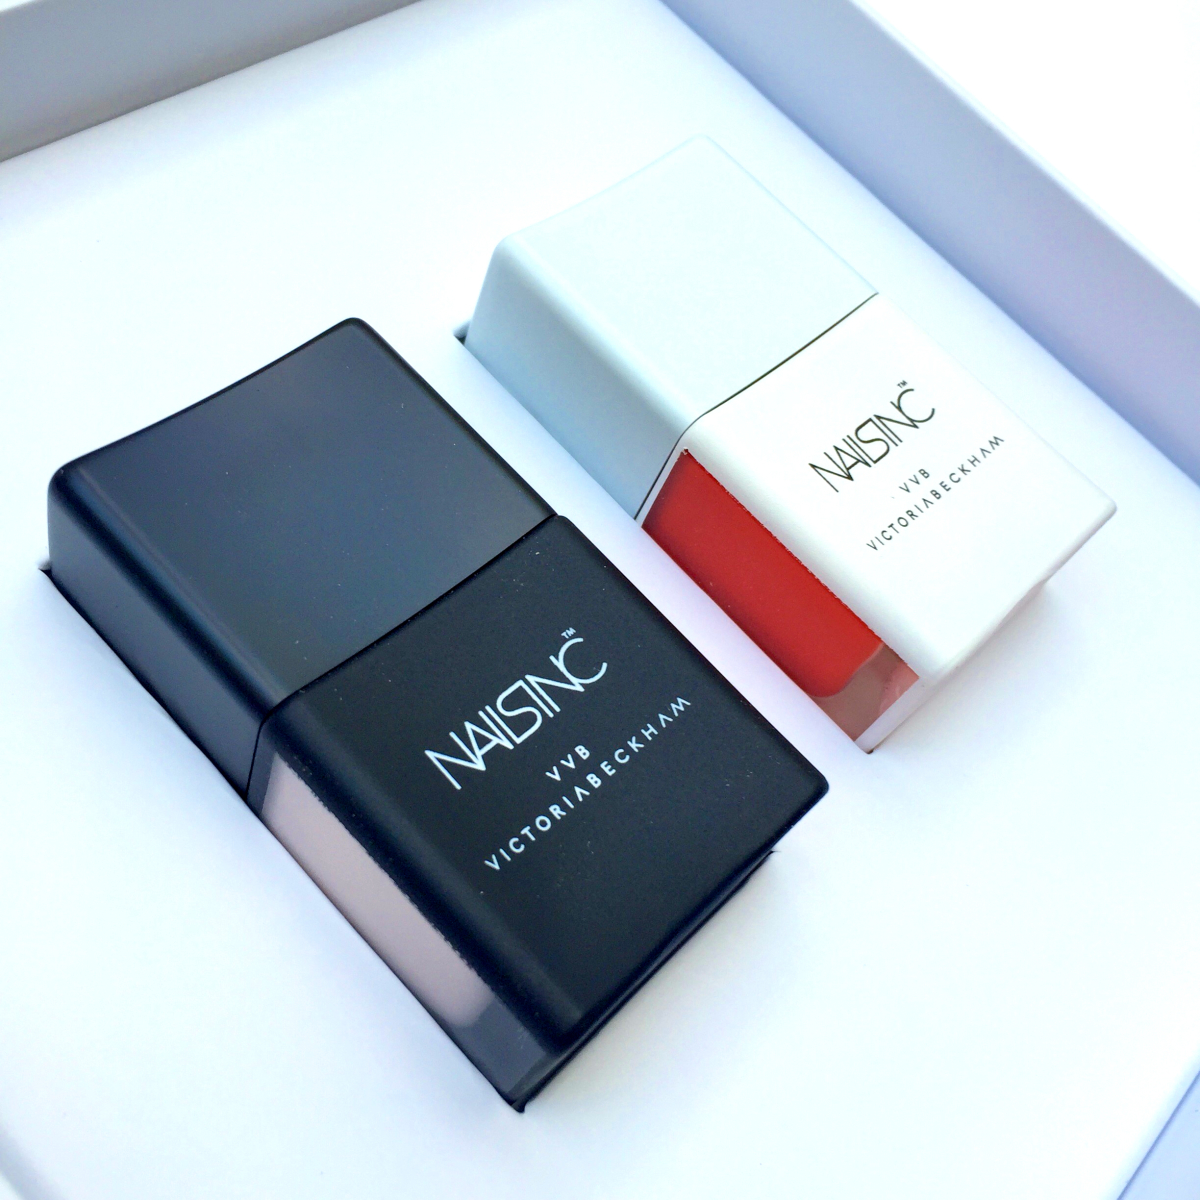 Meet The Tomato Red And Muted Bone Polishes Of Your Dreams: Nails Inc By Victoria, Victoria Beckham